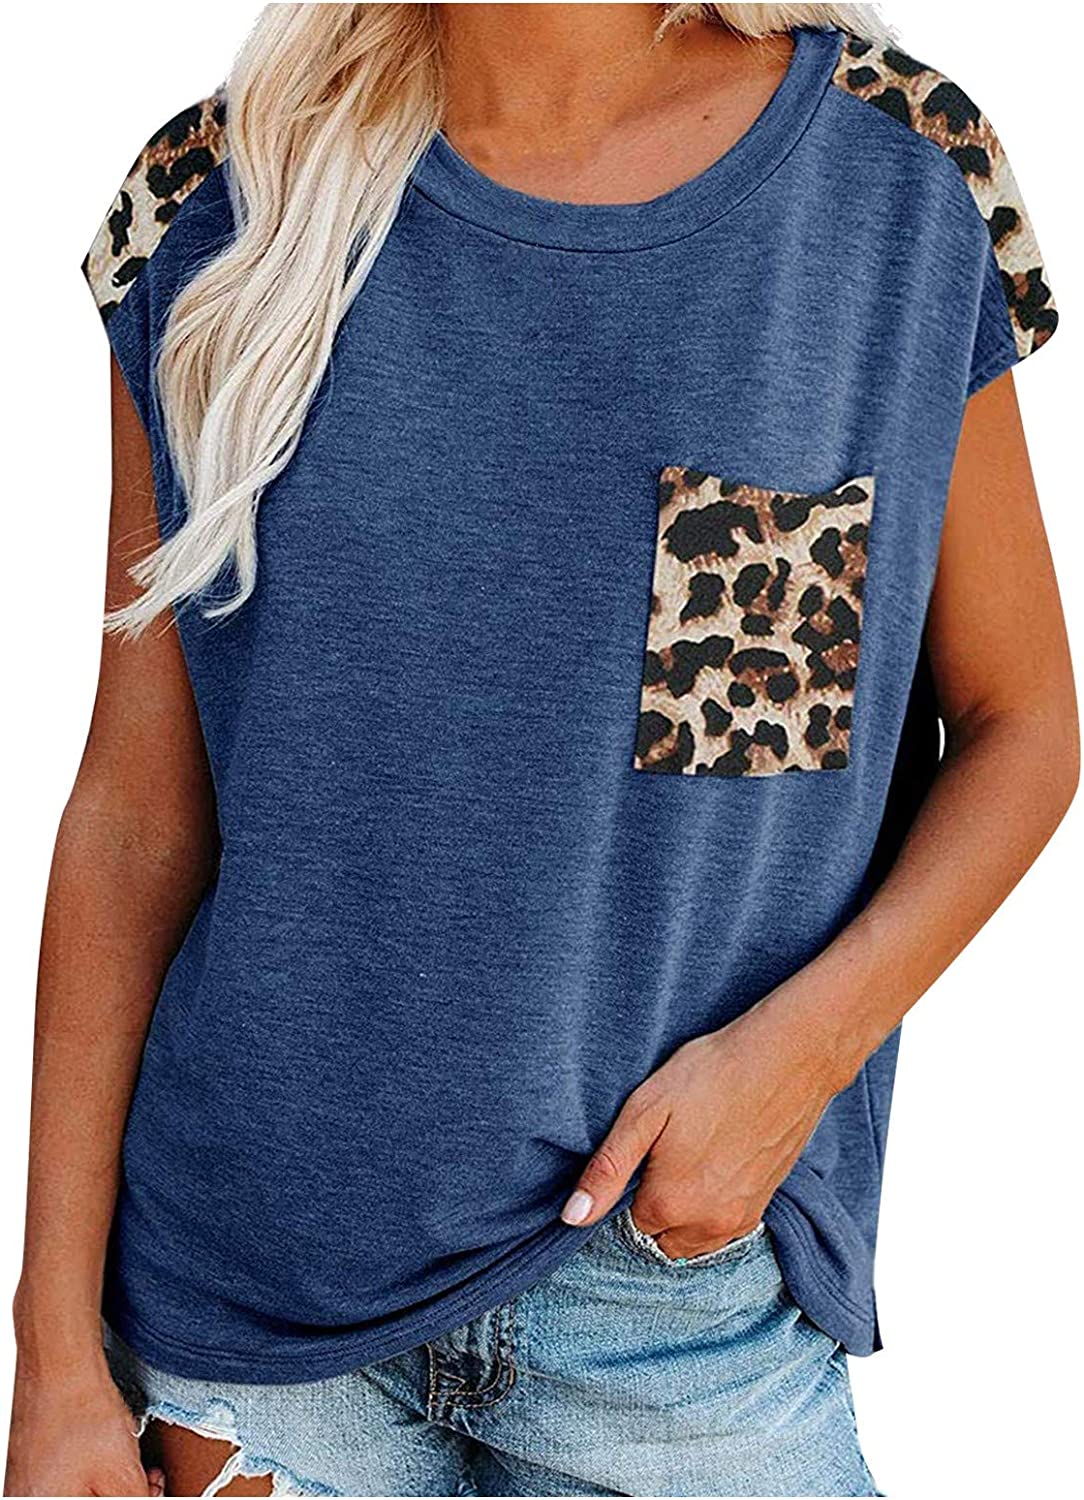 BEIBEIA Womens Short Sleeve Tops,Womens Loose T-Shirts Casual Leopard Short Sleeves O-Neck Blouse Tops Funny Shirts